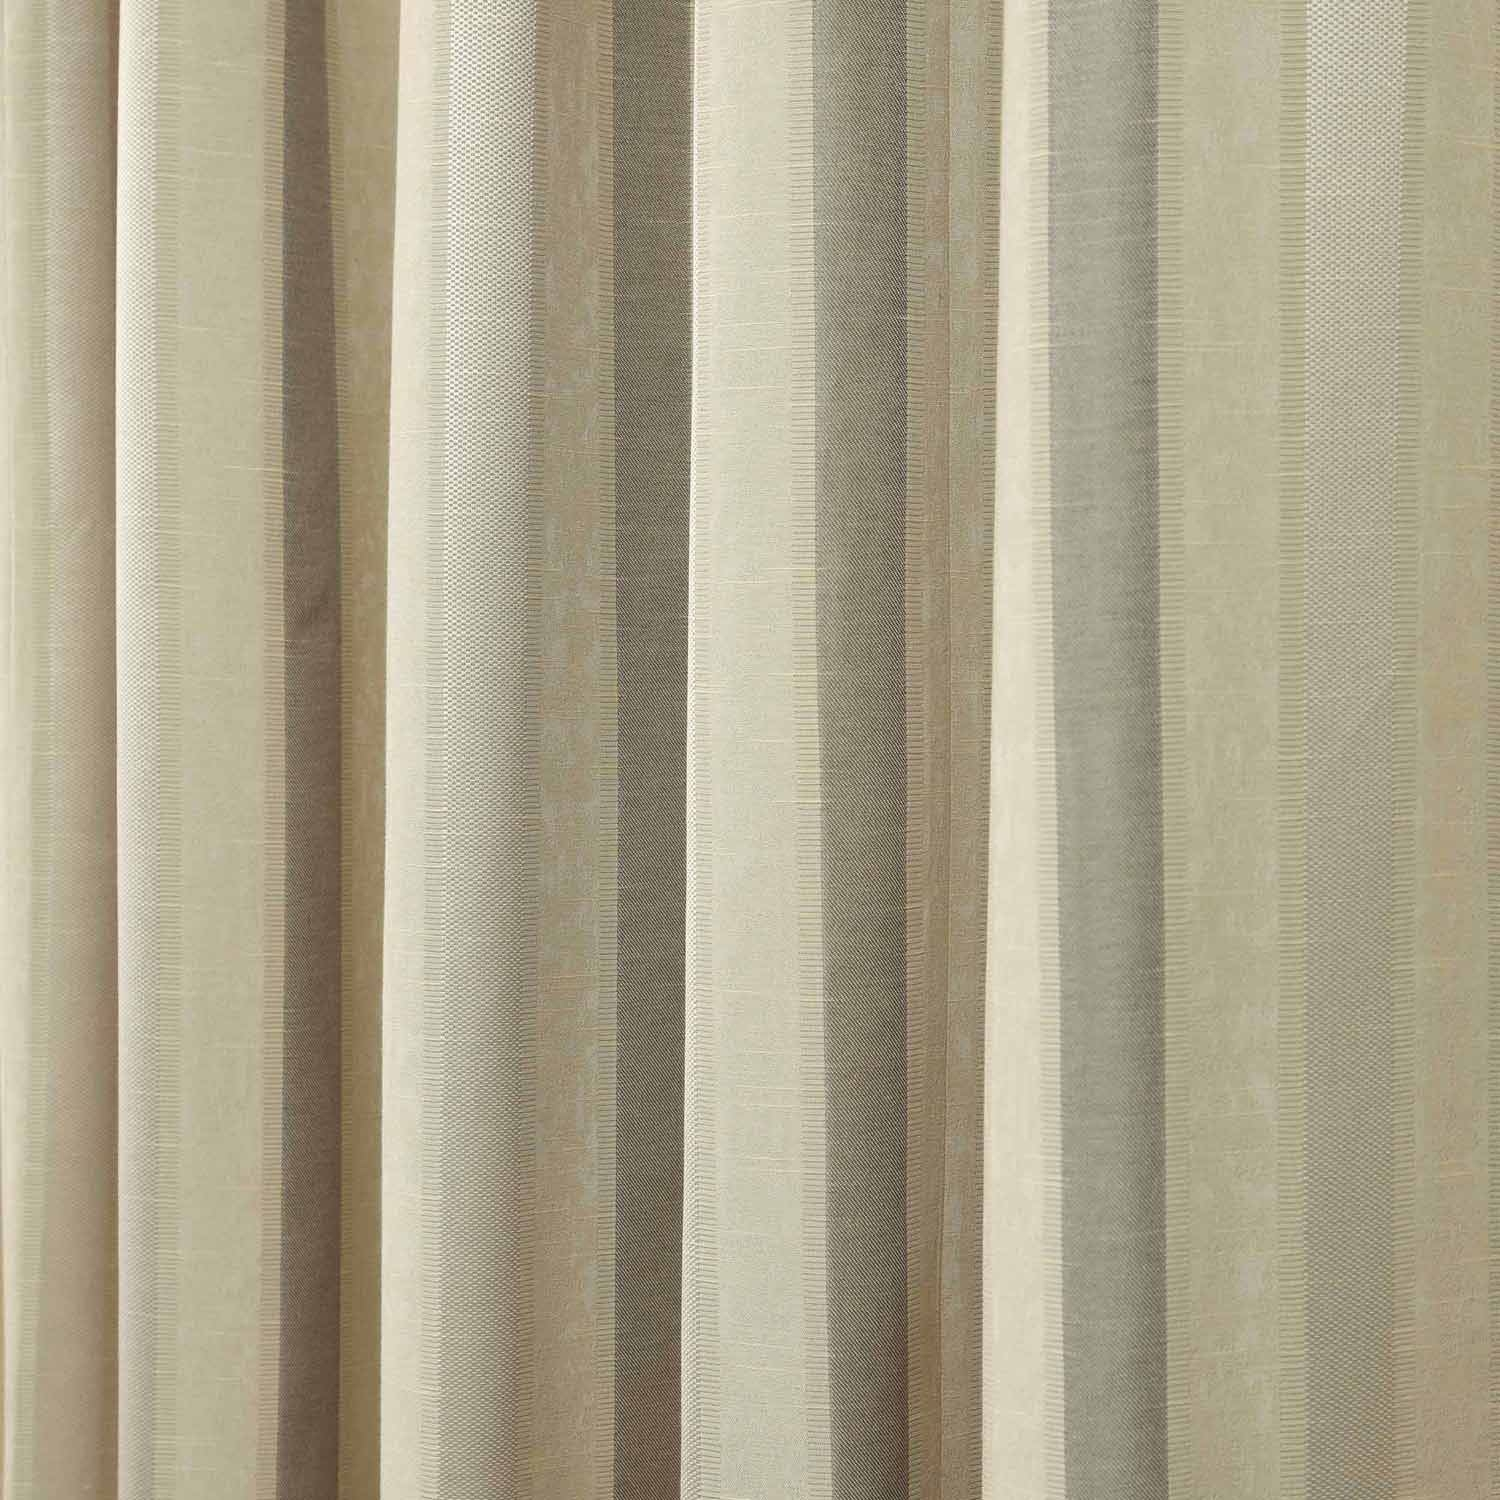 Pencil Pleat Jacquard Striped Curtains Fully Lined Blue Cream Inside Green And Cream Striped Curtains (Image 11 of 15)